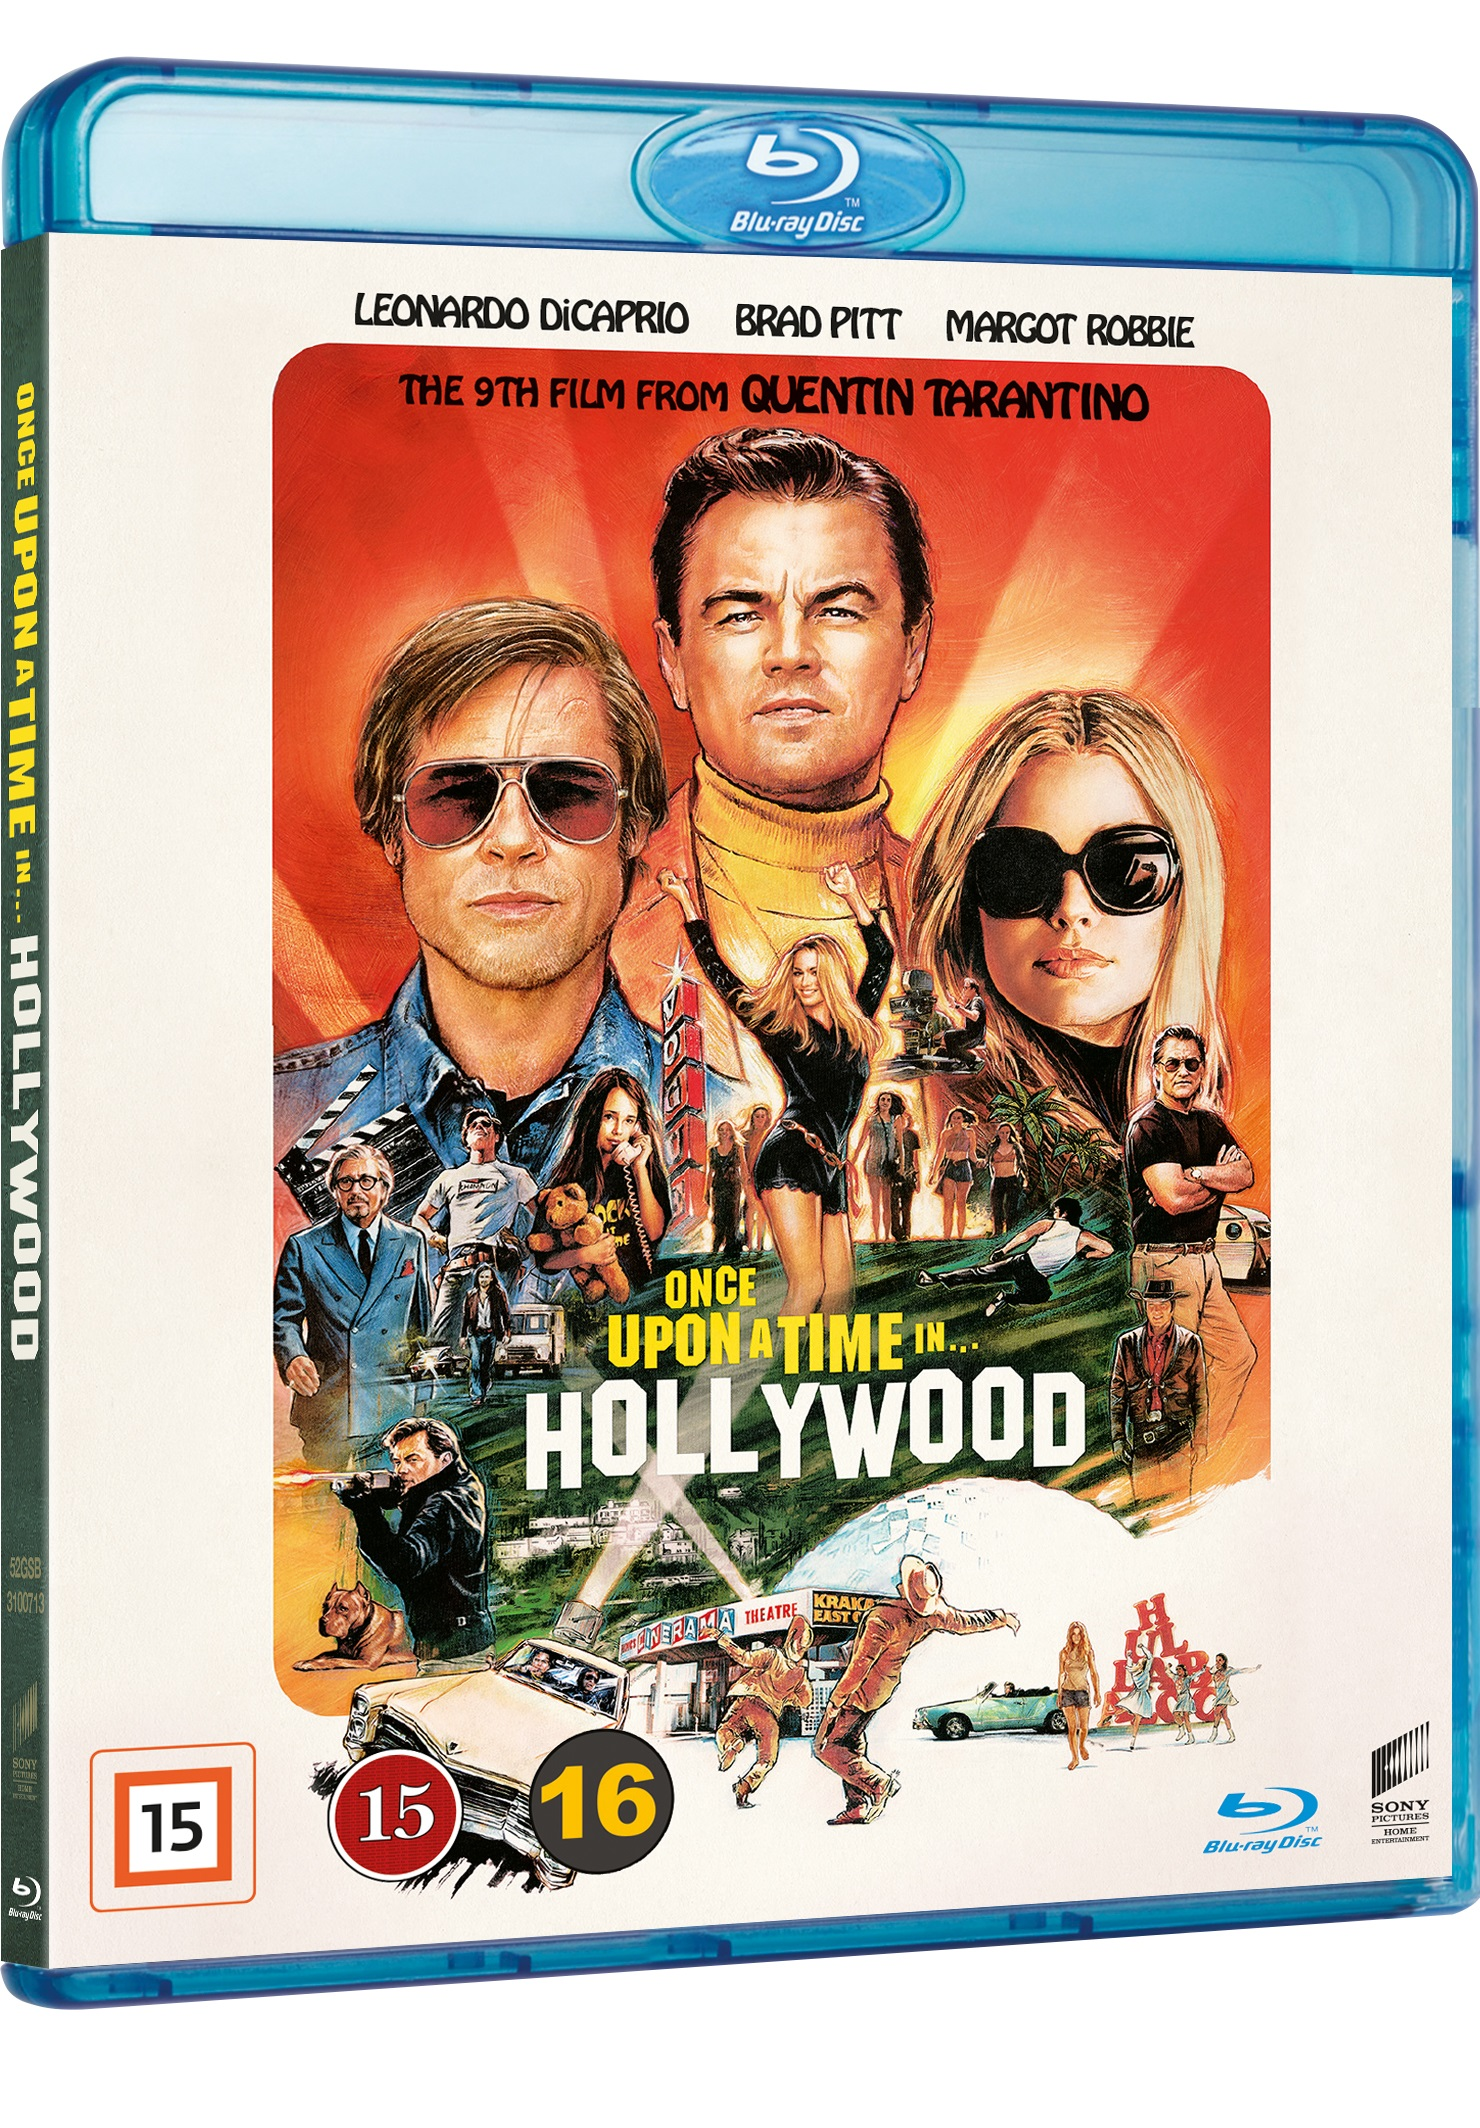 Once Upon a Time in Hollywood - Quentin Tarantino - Film -  - 7330031007130 - 27/12-2019